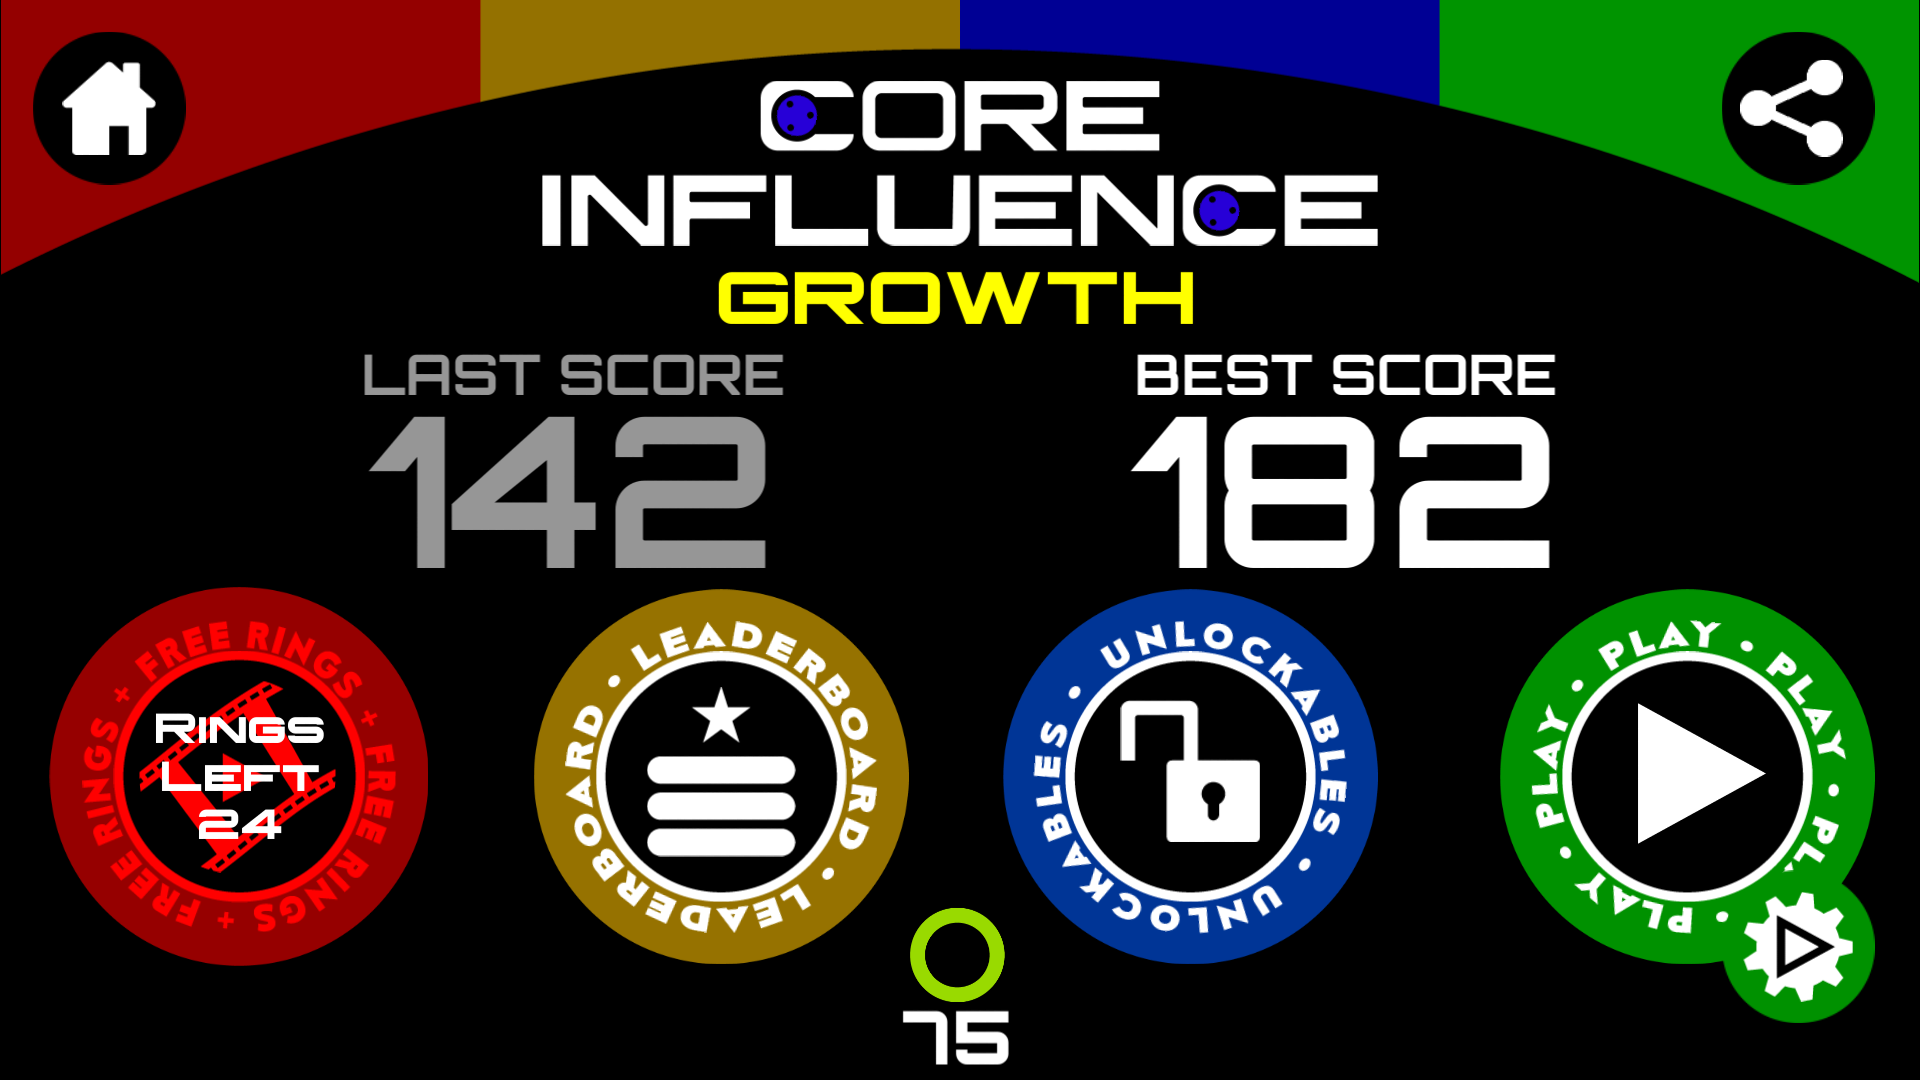 CoreInfluence_GameResults_1920x1080_20161126.png